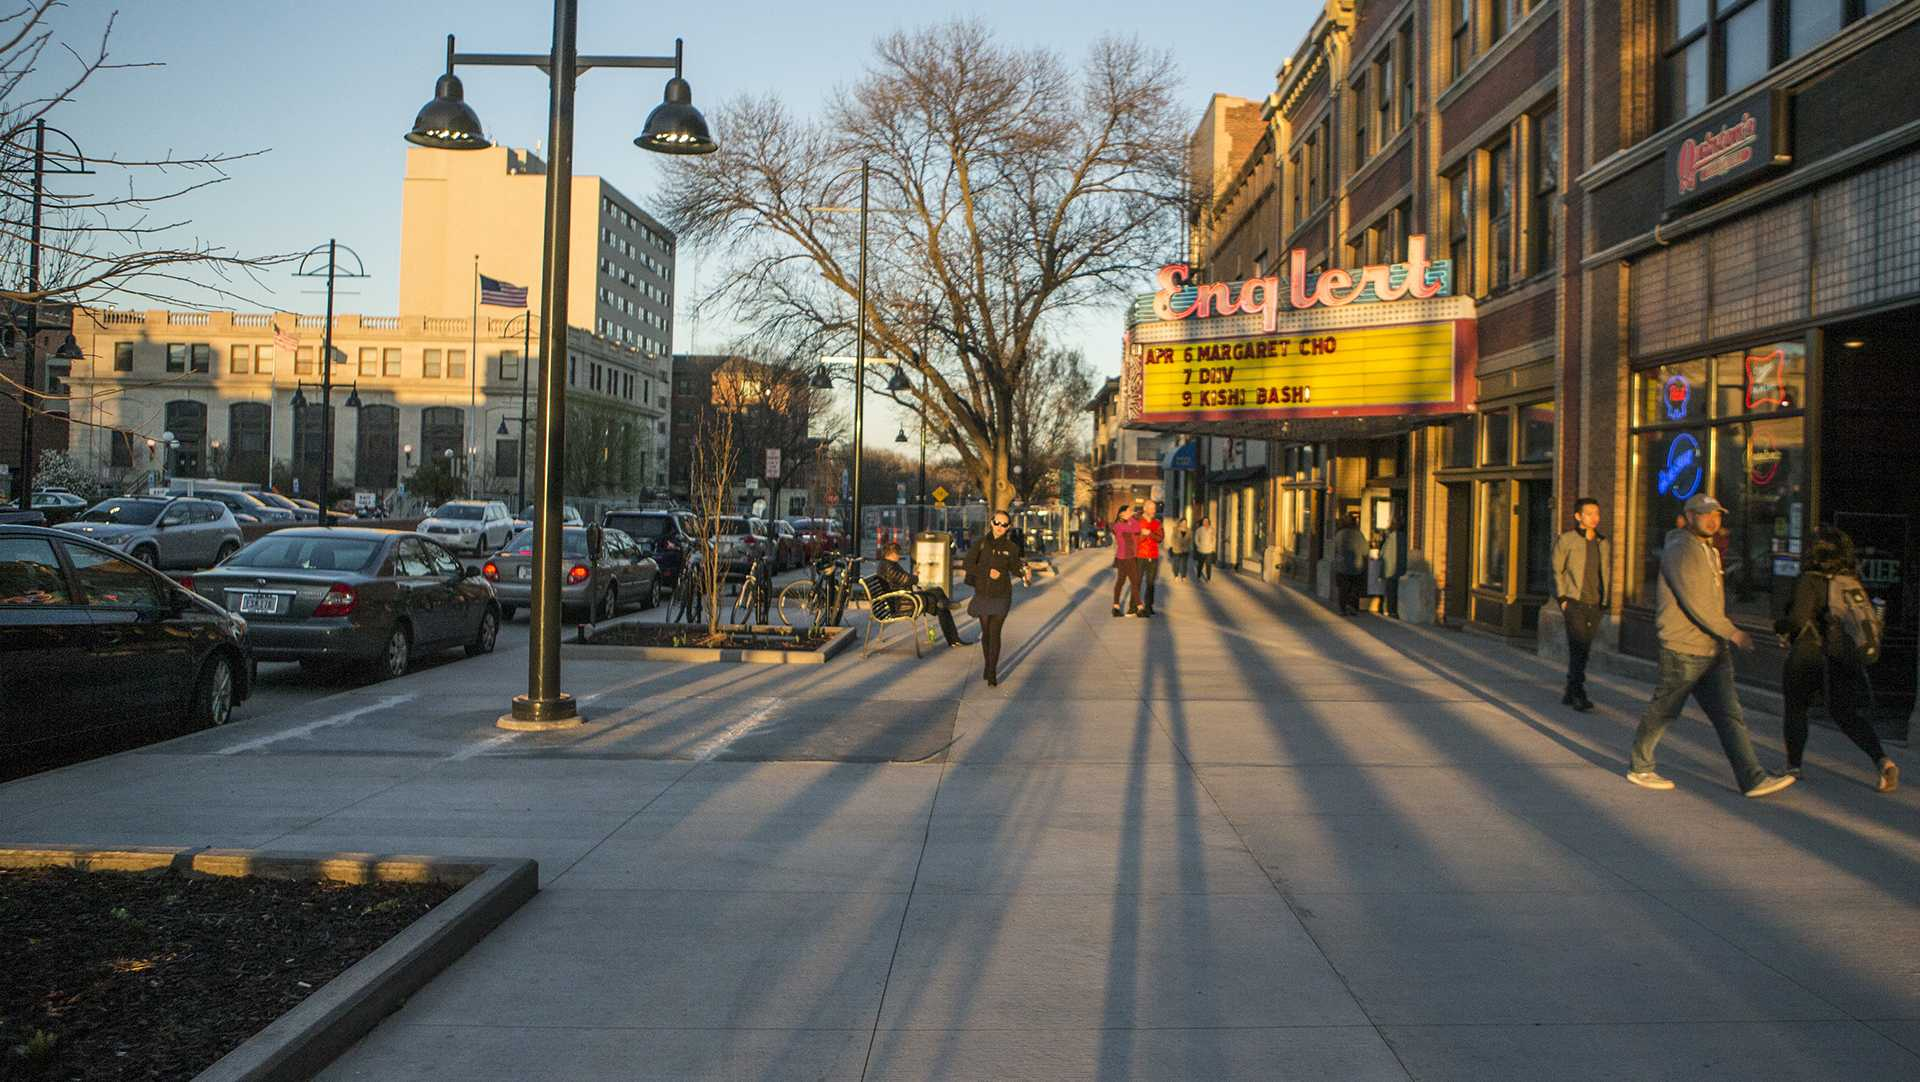 People walk the streets outside The Englert Theatre on Thursday, April 6, 2017. (Ben Allan Smith/The Daily Iowan)